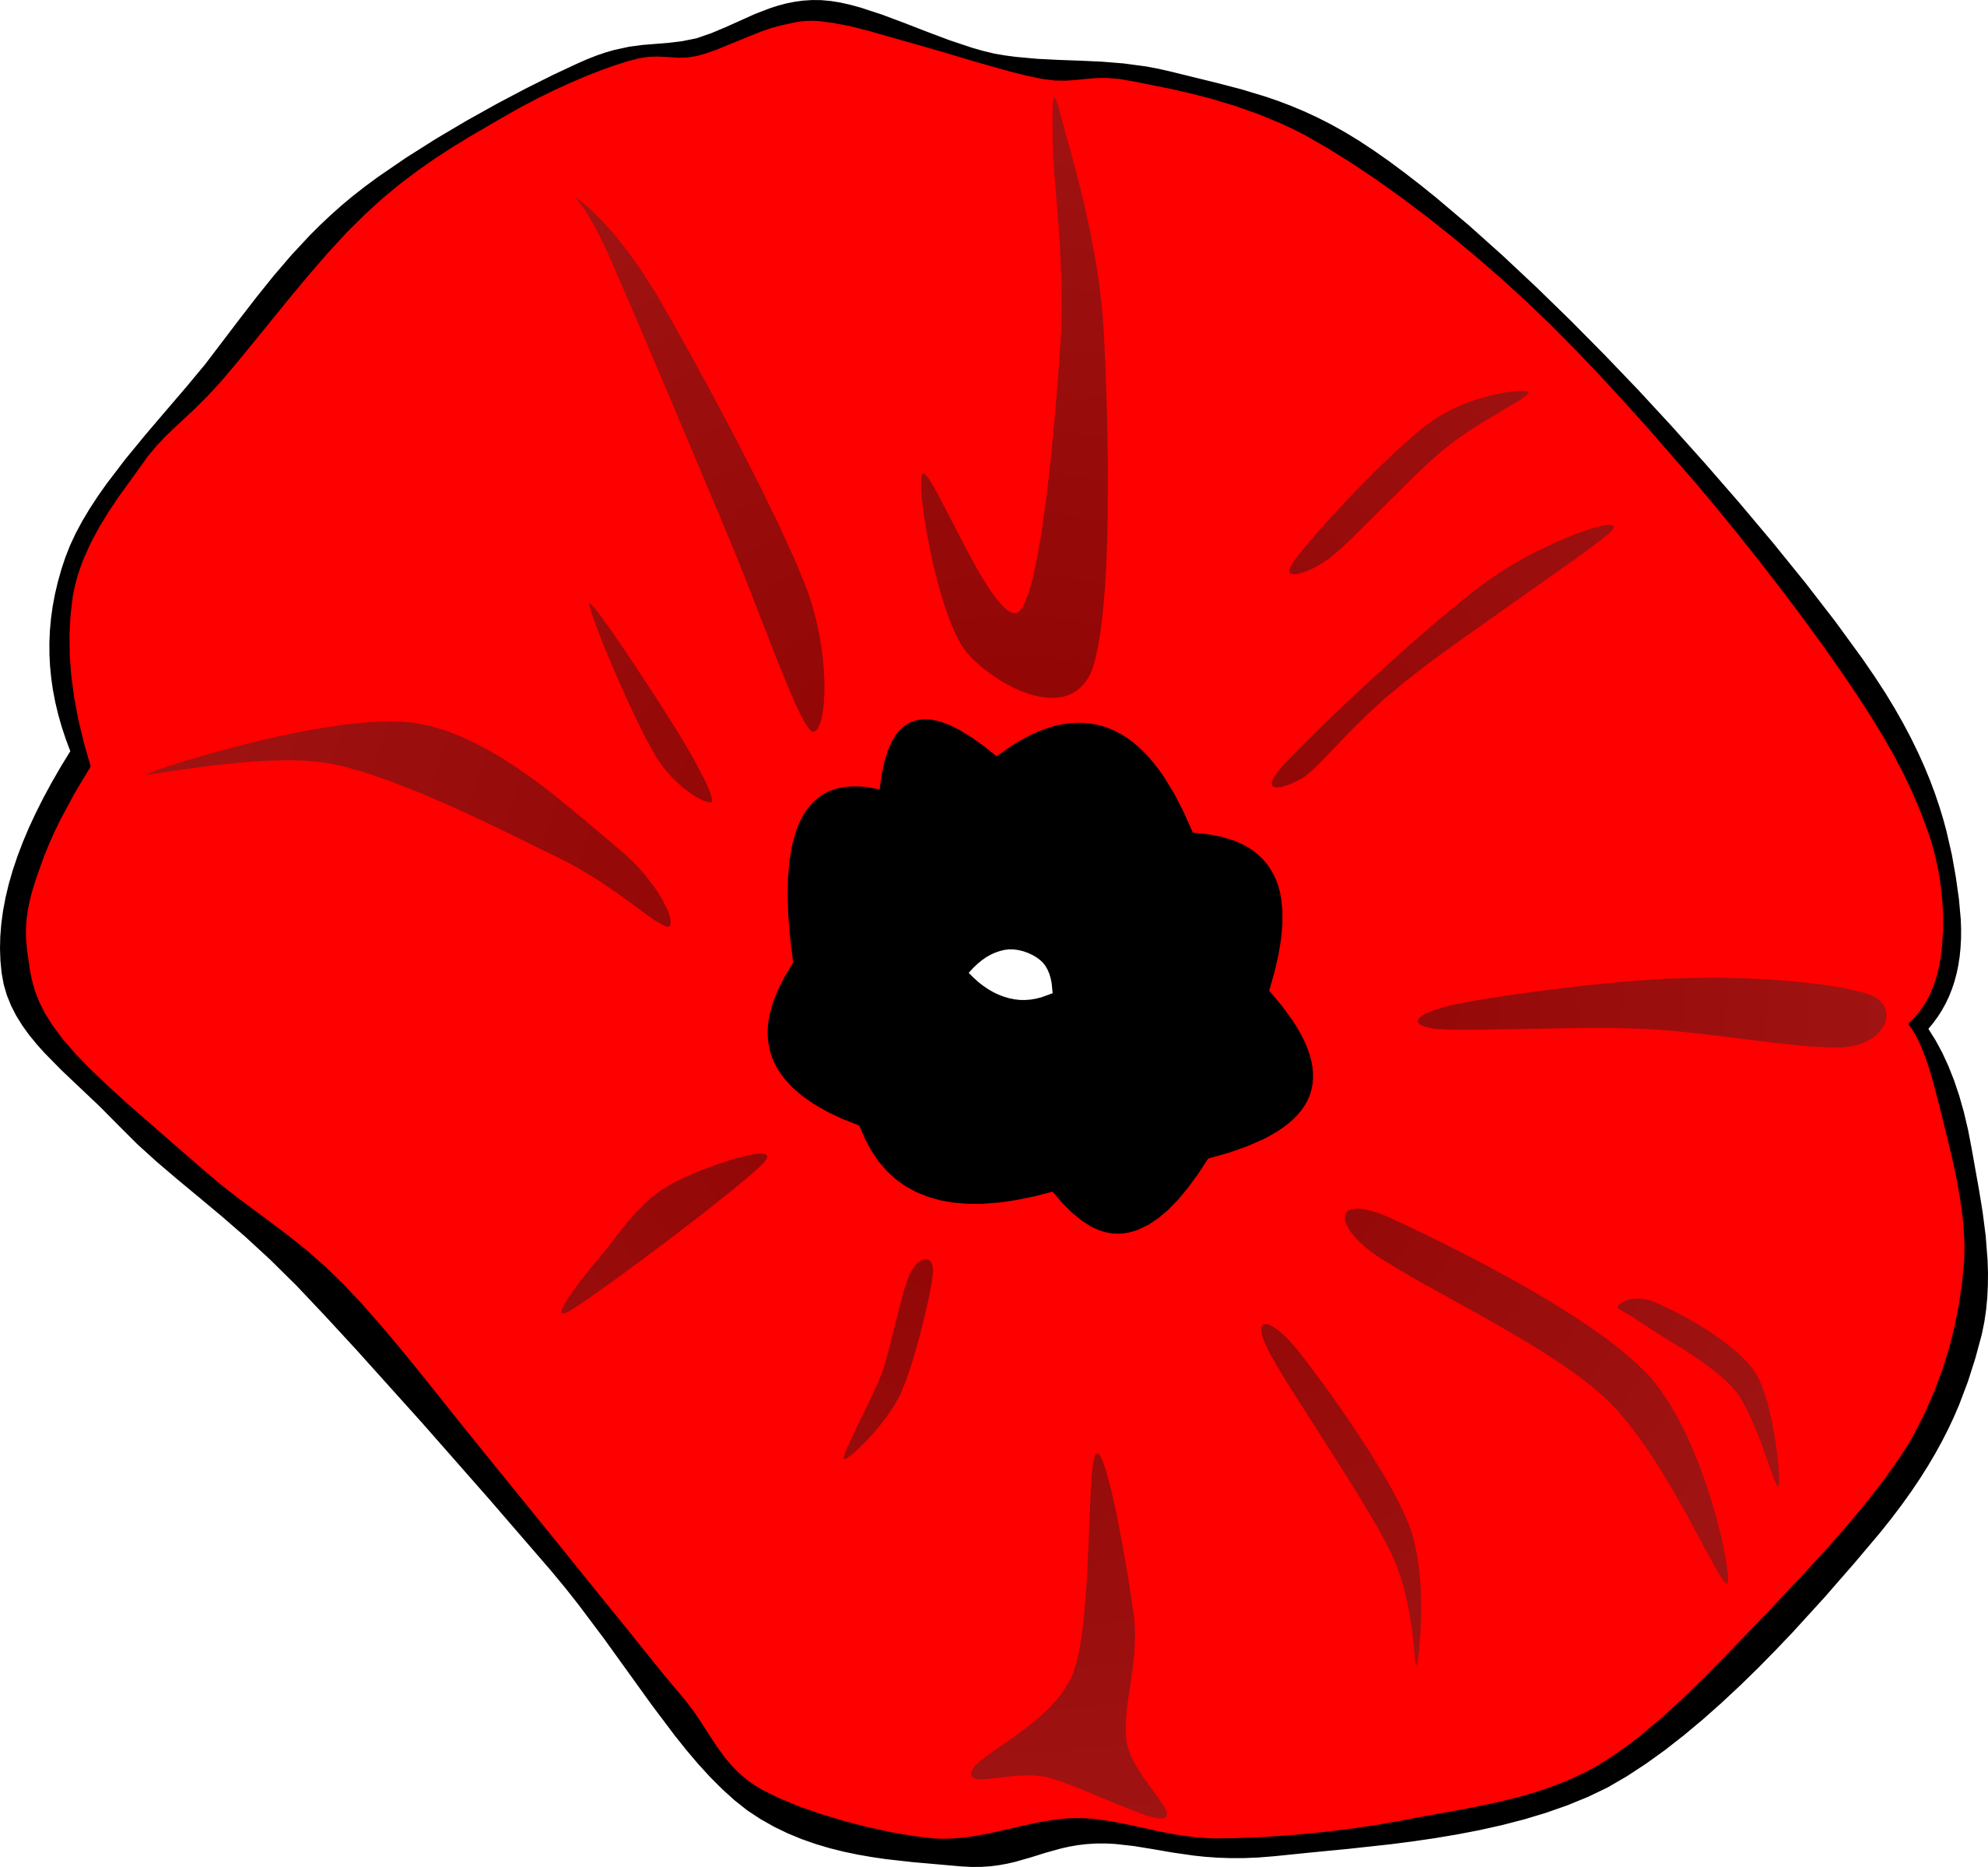 Day clipart. Canadian remembrance